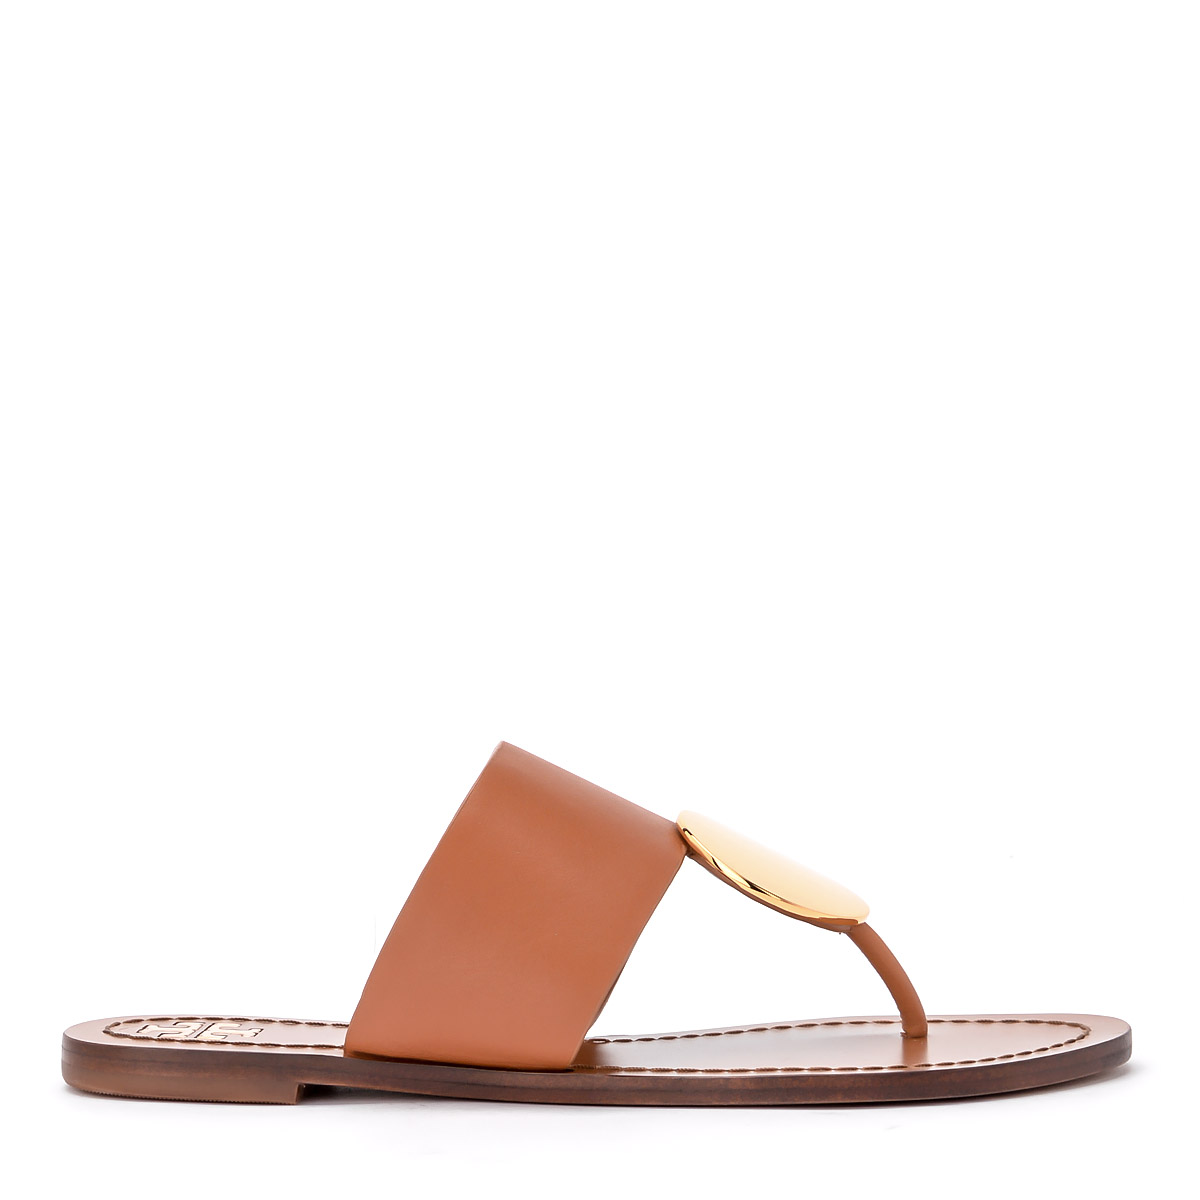 Sandalo Tory Burch Patos in pelle cuoio